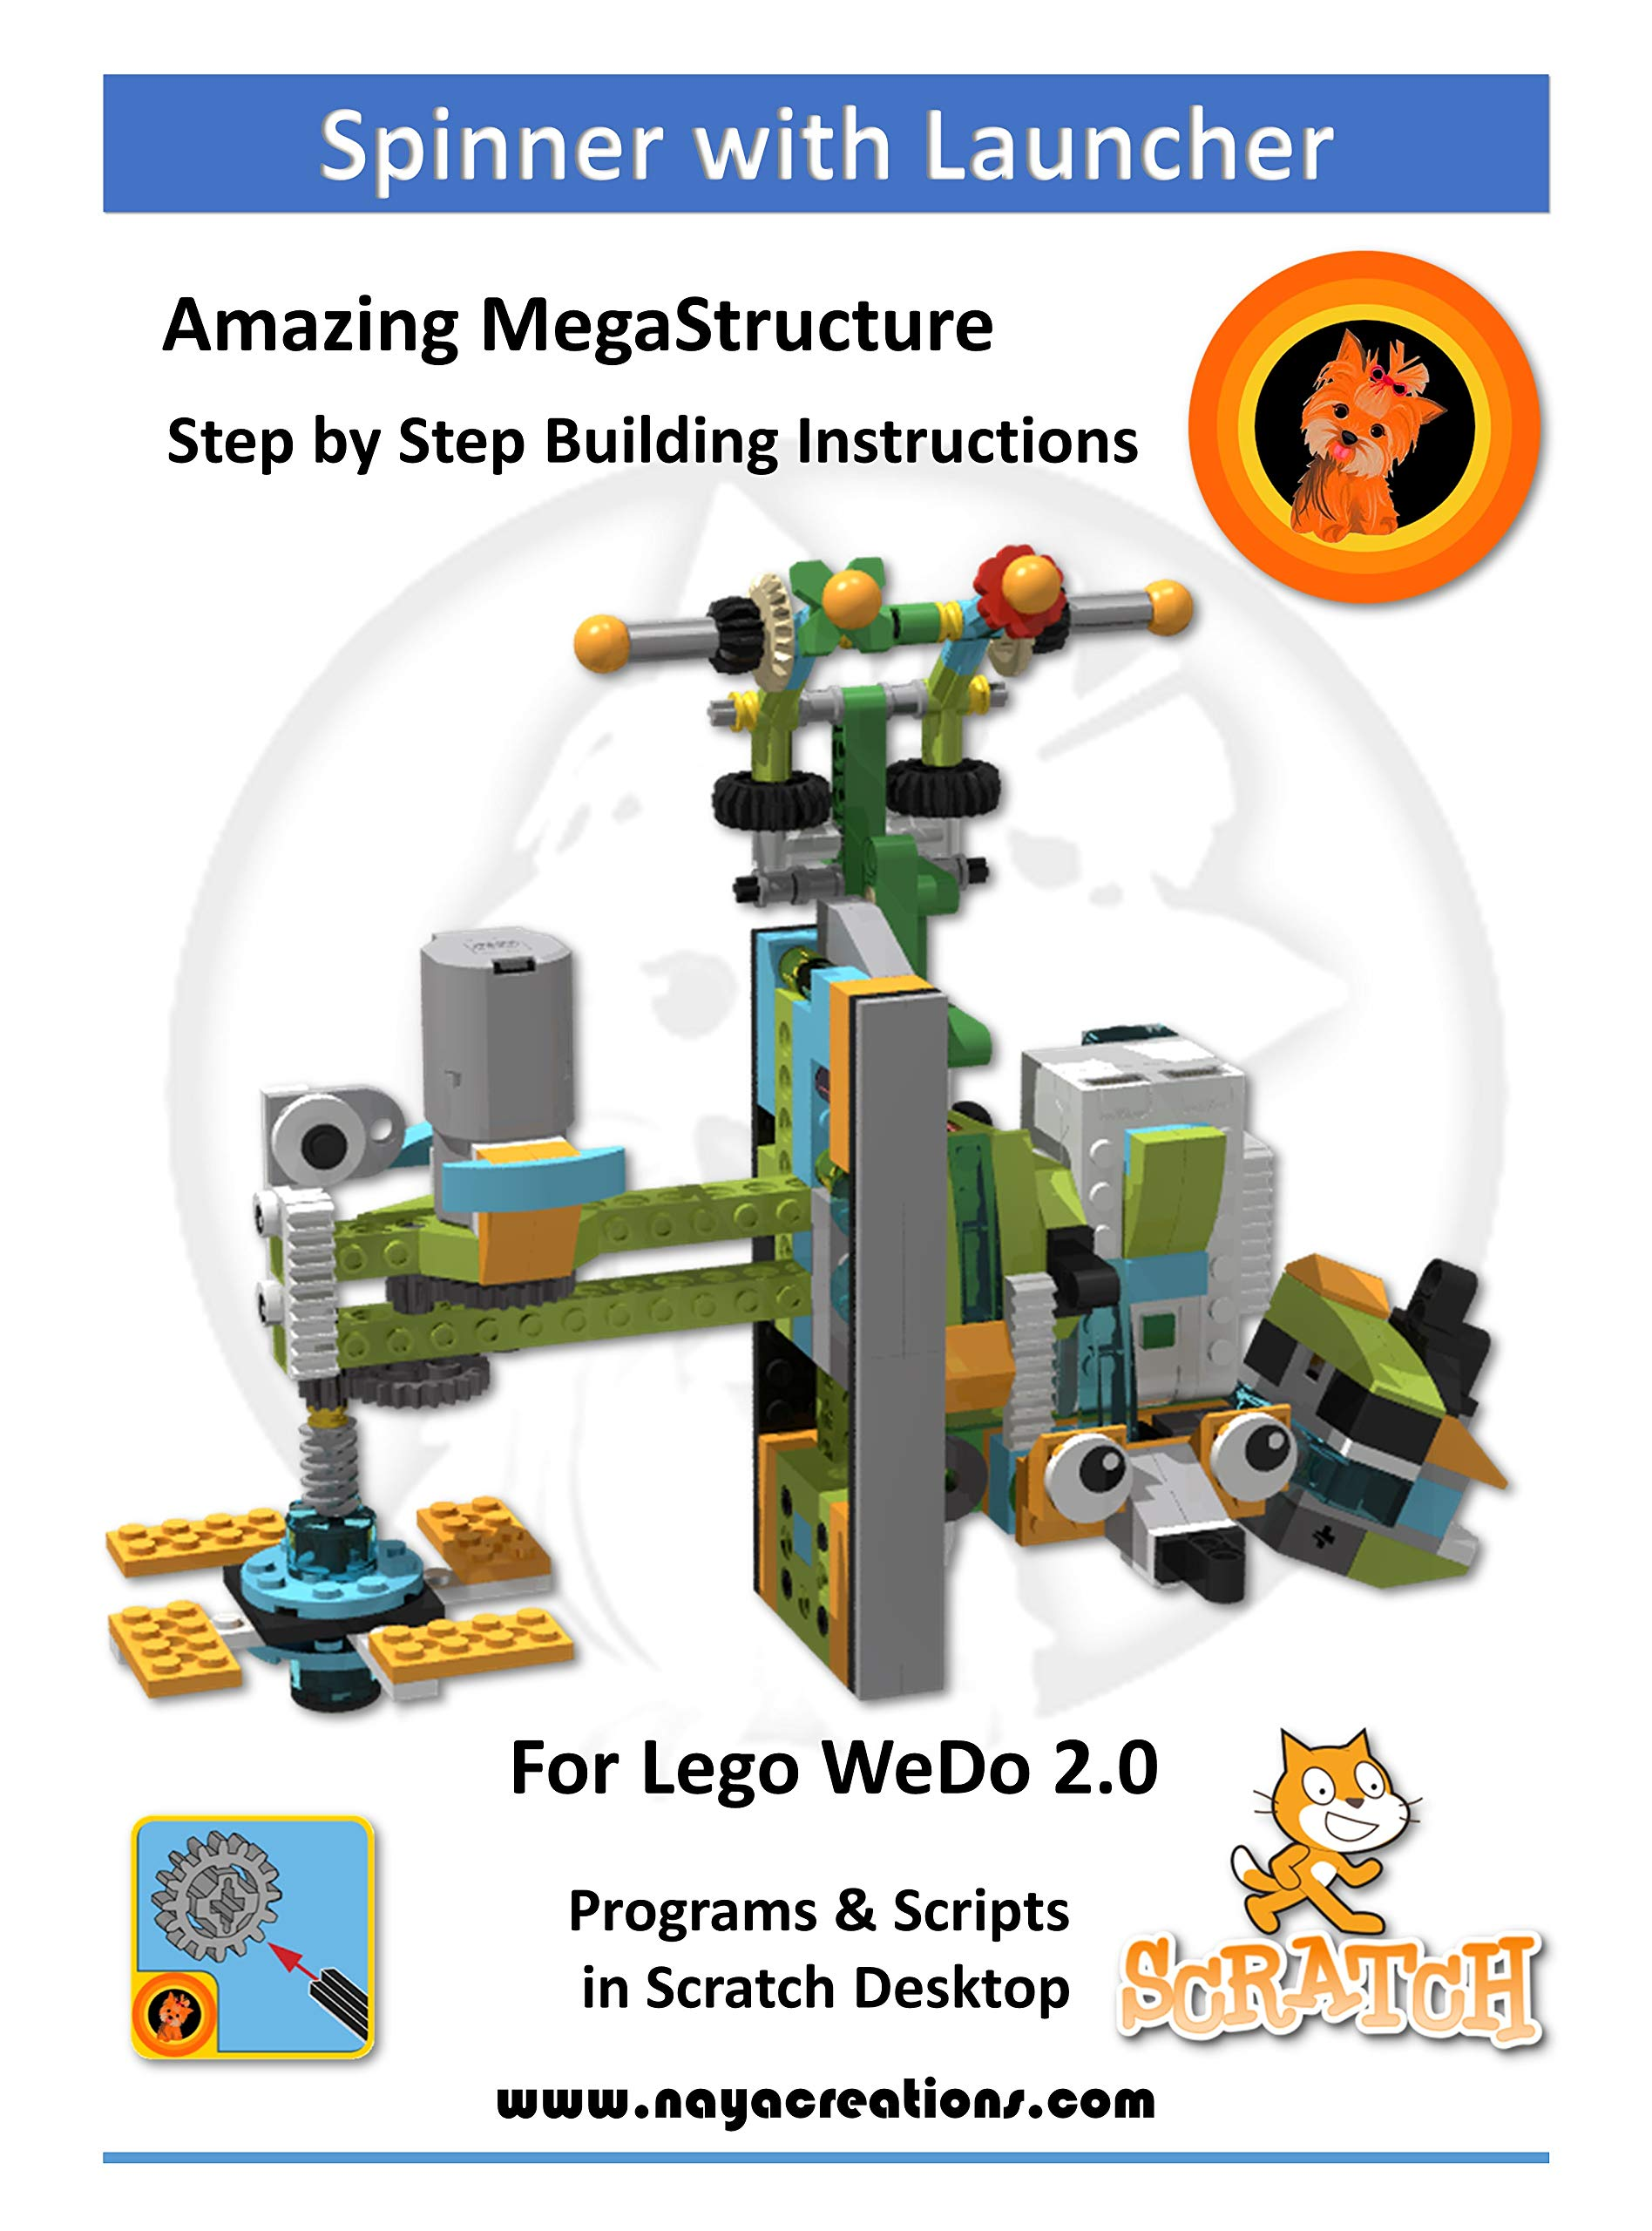 Spinner with Launcher: Model and project for Lego WeDo 2.0 (English Edition)